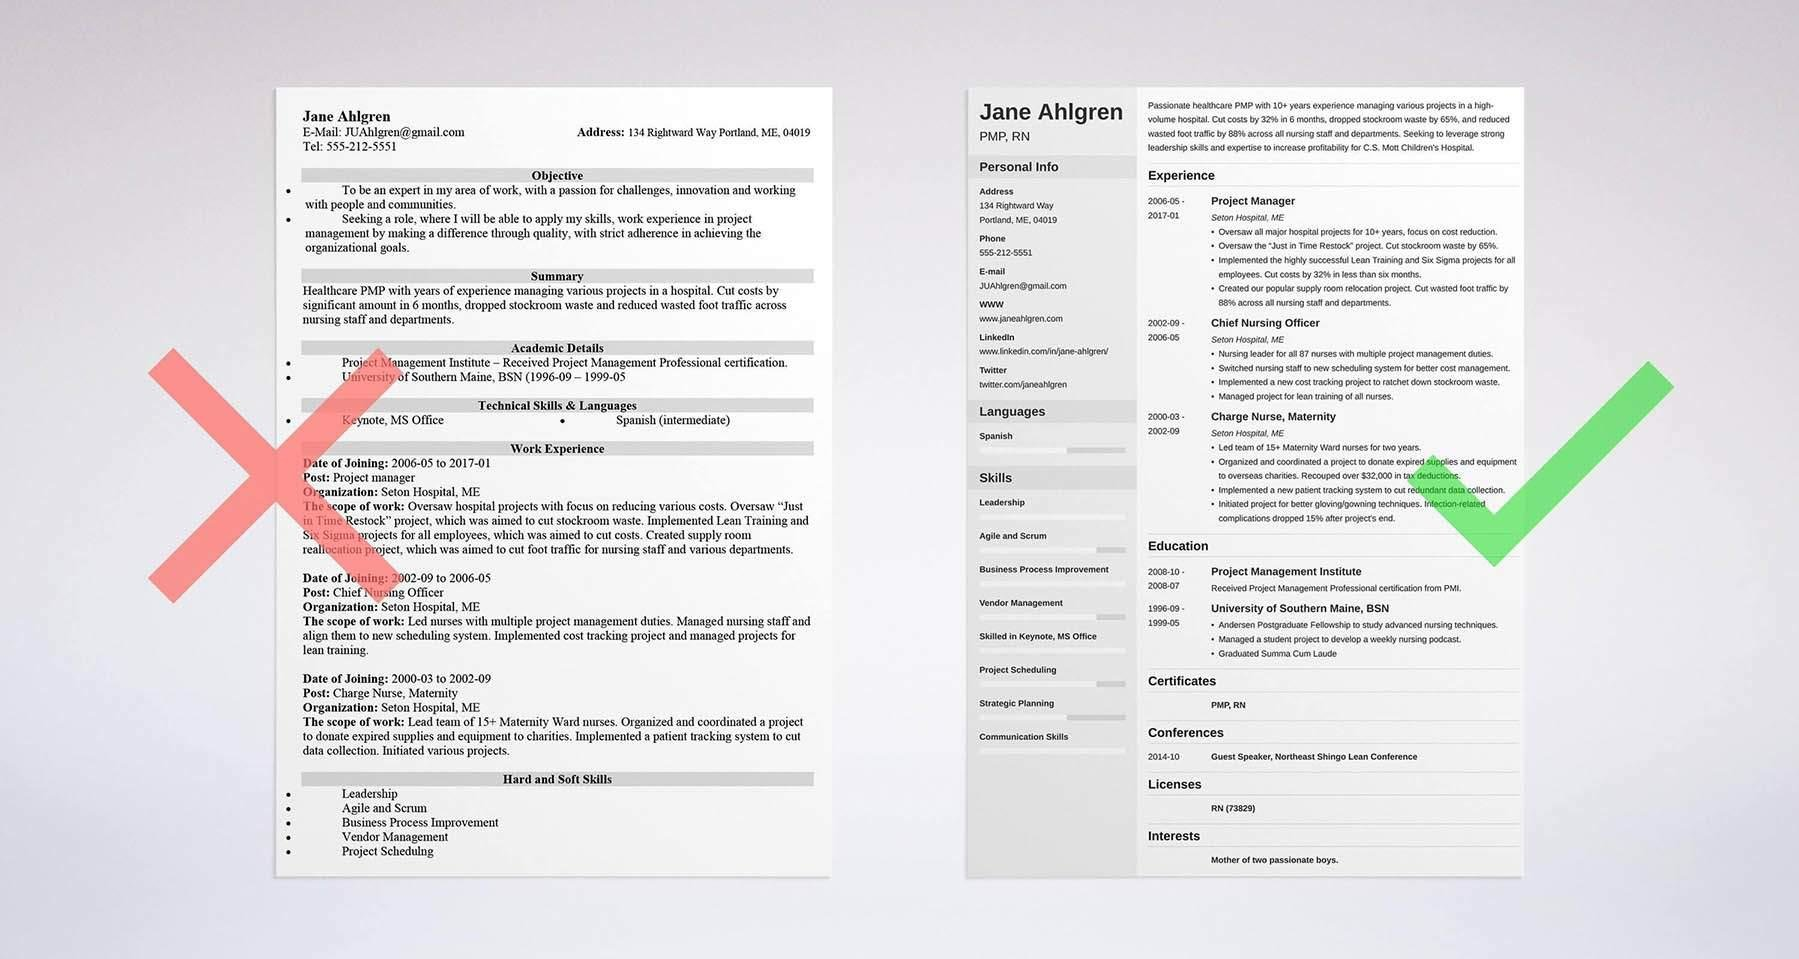 What To Have On A Resume.99 Key Skills For A Resume Best List Of Examples For All Jobs